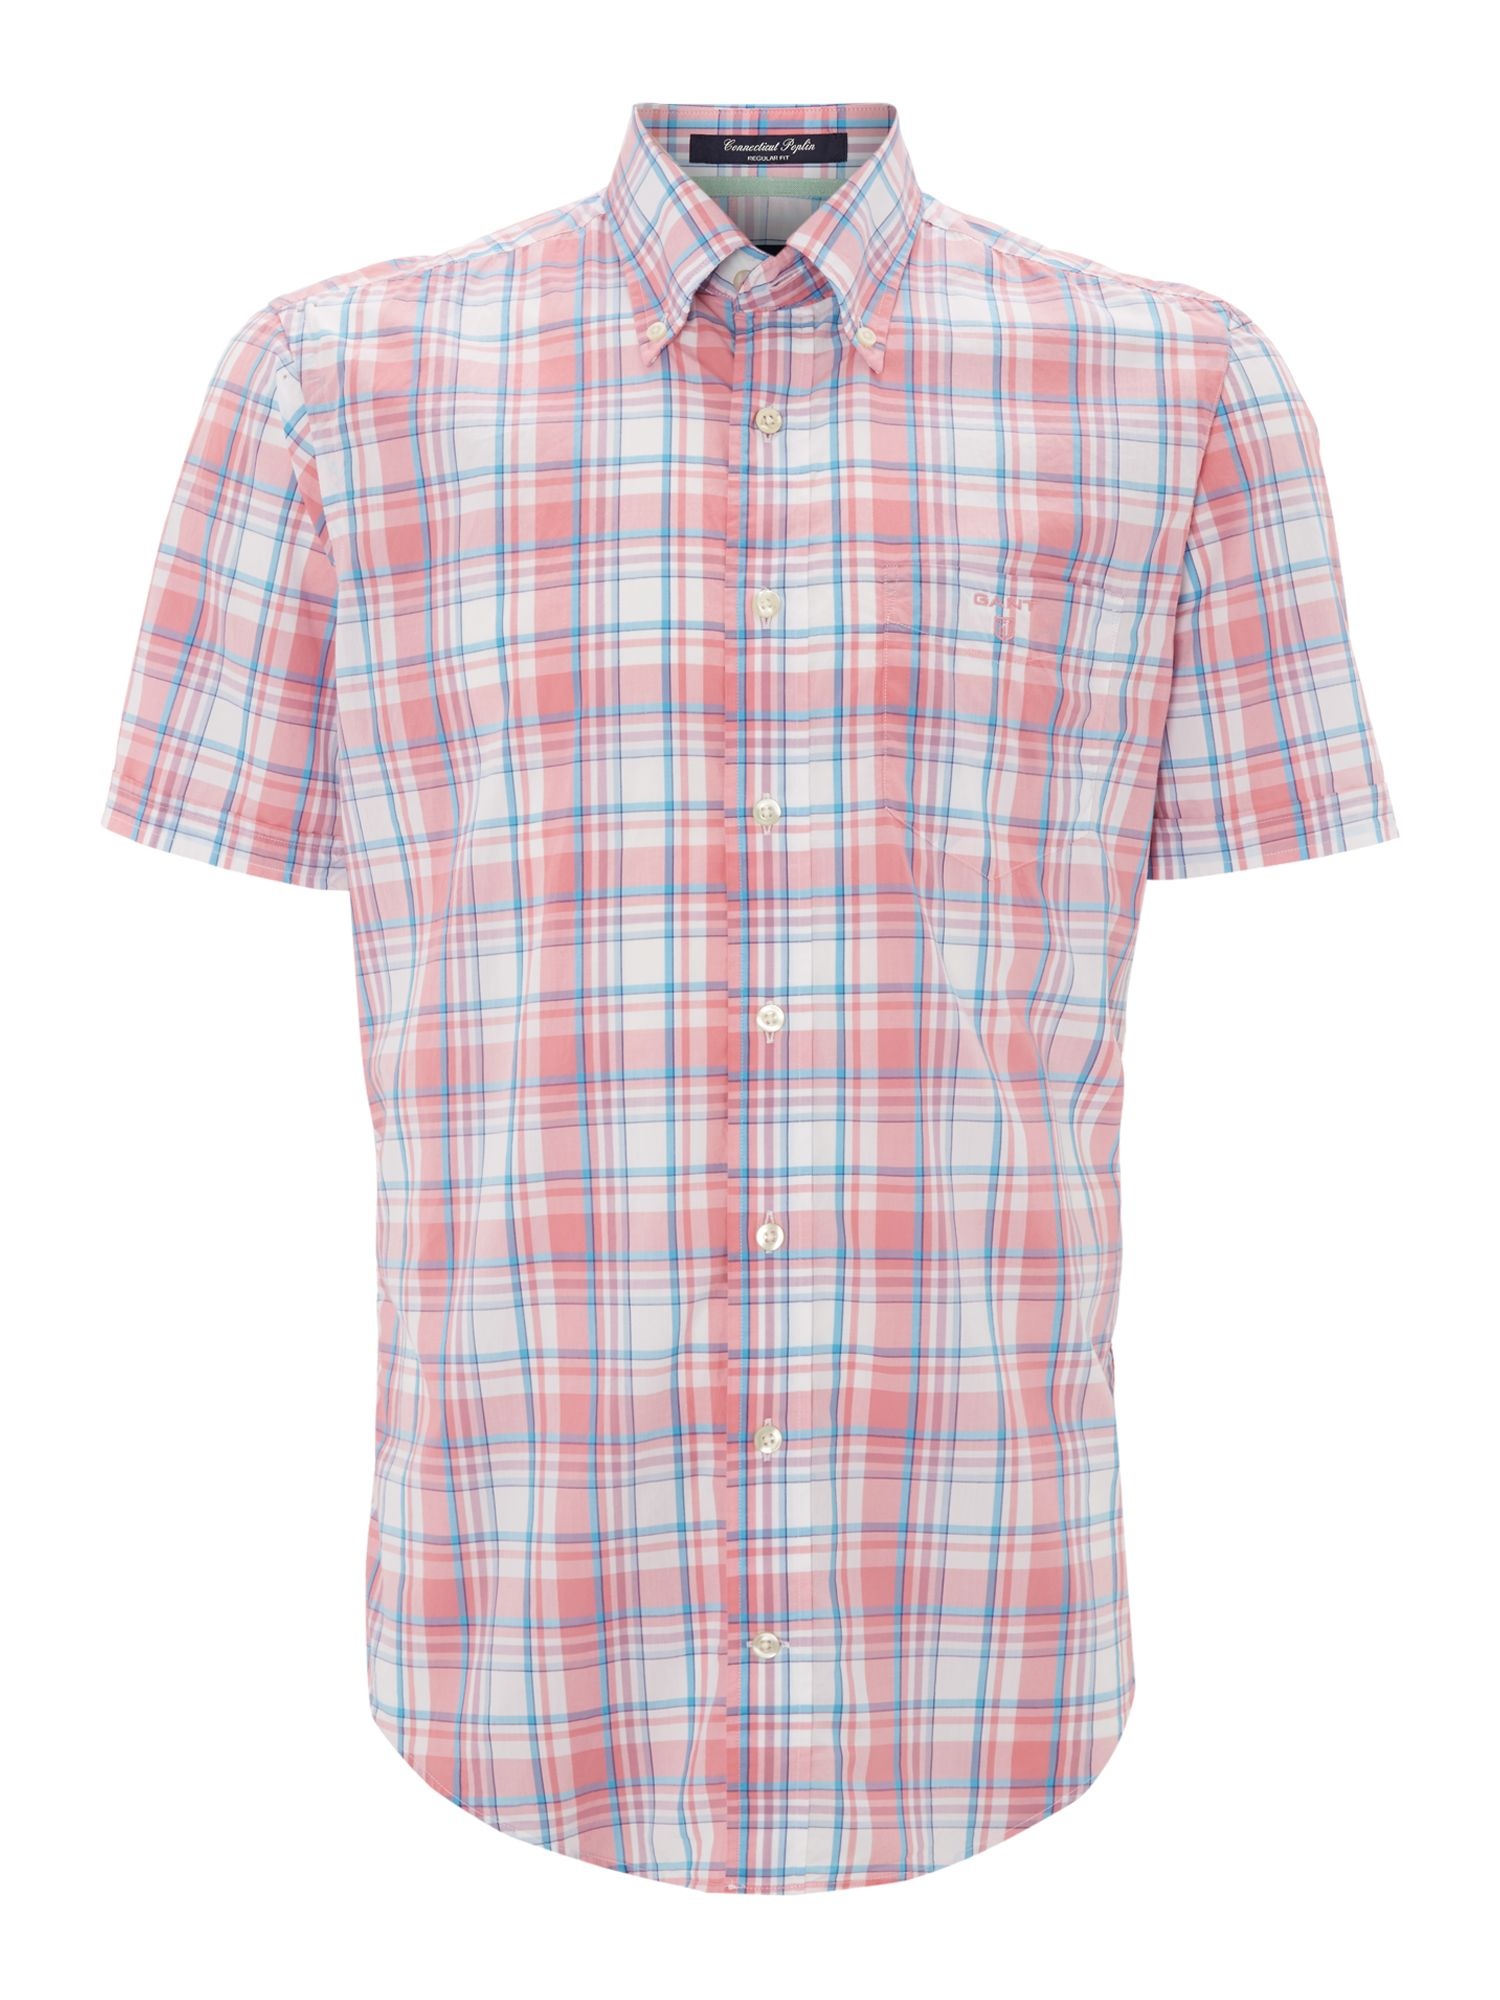 Short sleeve poplin check shirt